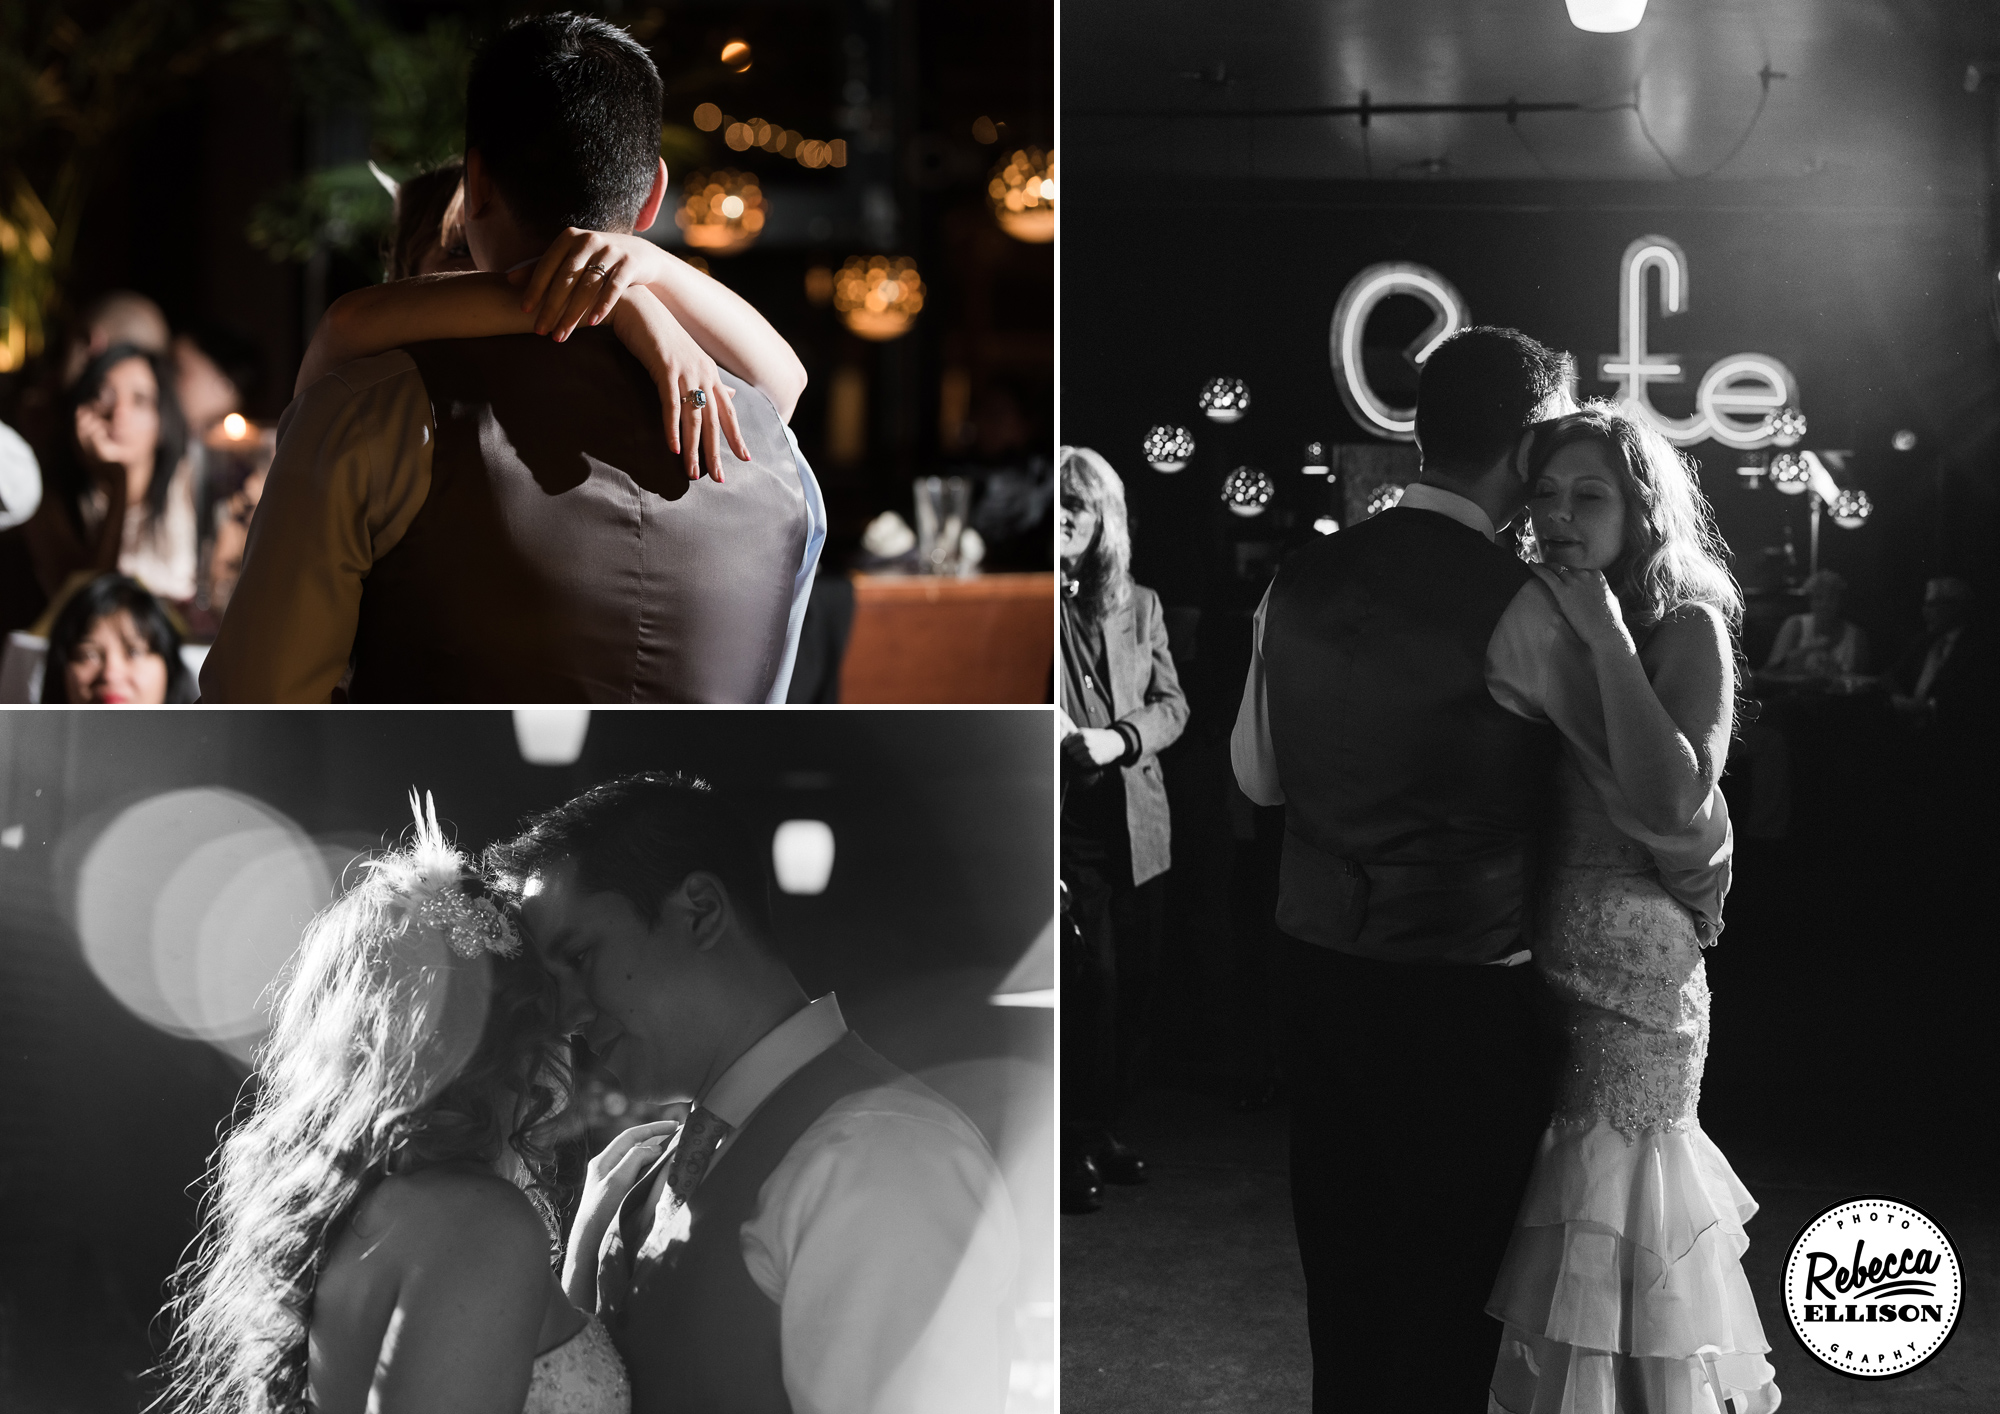 Bride and Groom dance at their wedding reception at the Ballroom during their summer Seattle wedding photographed by Seattle wedding photographer Rebecca Ellison